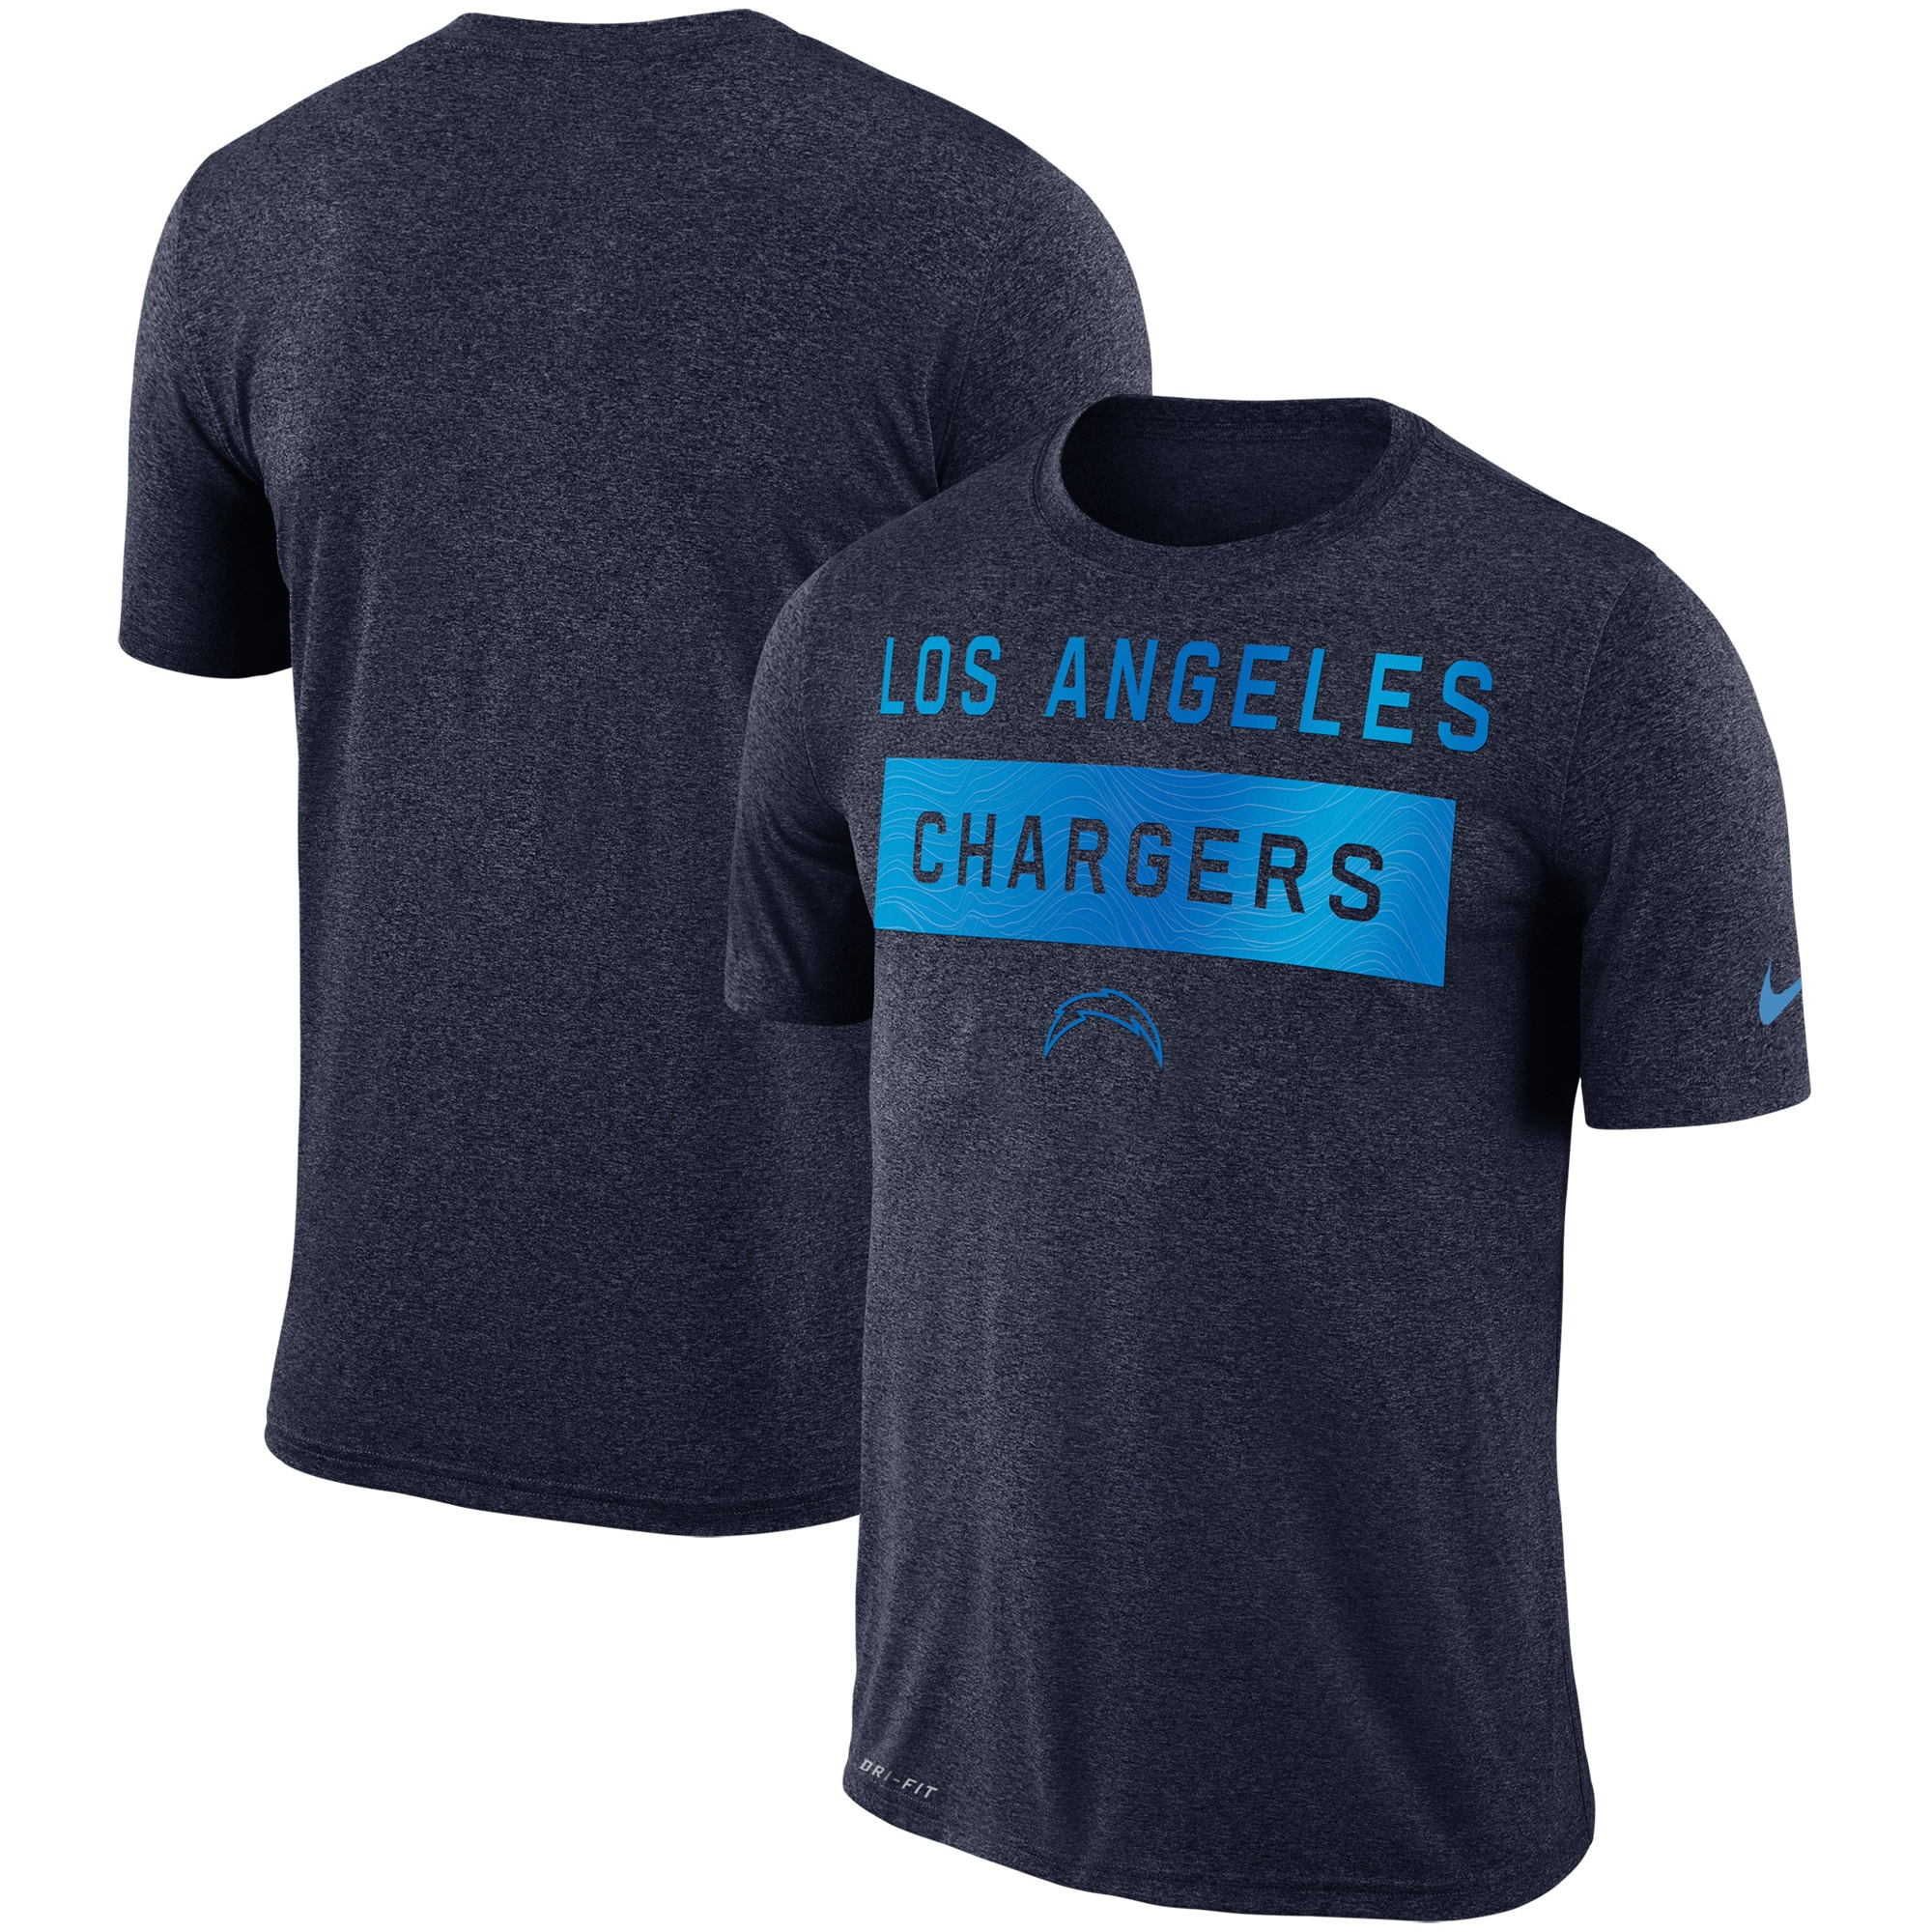 Los Angeles Chargers Nike Sideline Legend Lift Performance T-Shirt - Navy